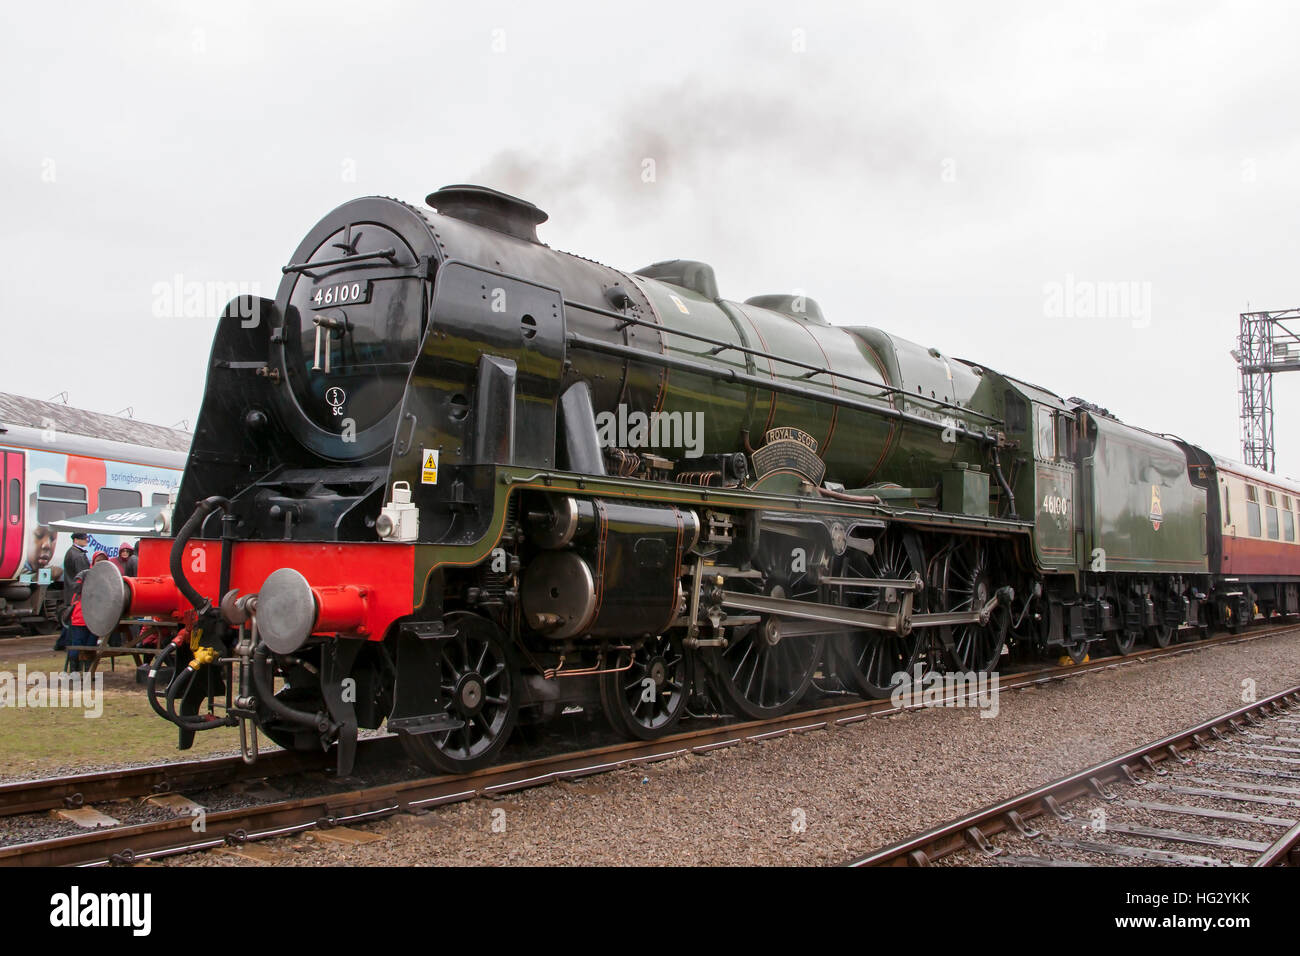 46100 Royal Scot Steam Train at First Great Western St Phillips Marsh Depot, Bristol, England Open Day 02/05/2016. - Stock Image